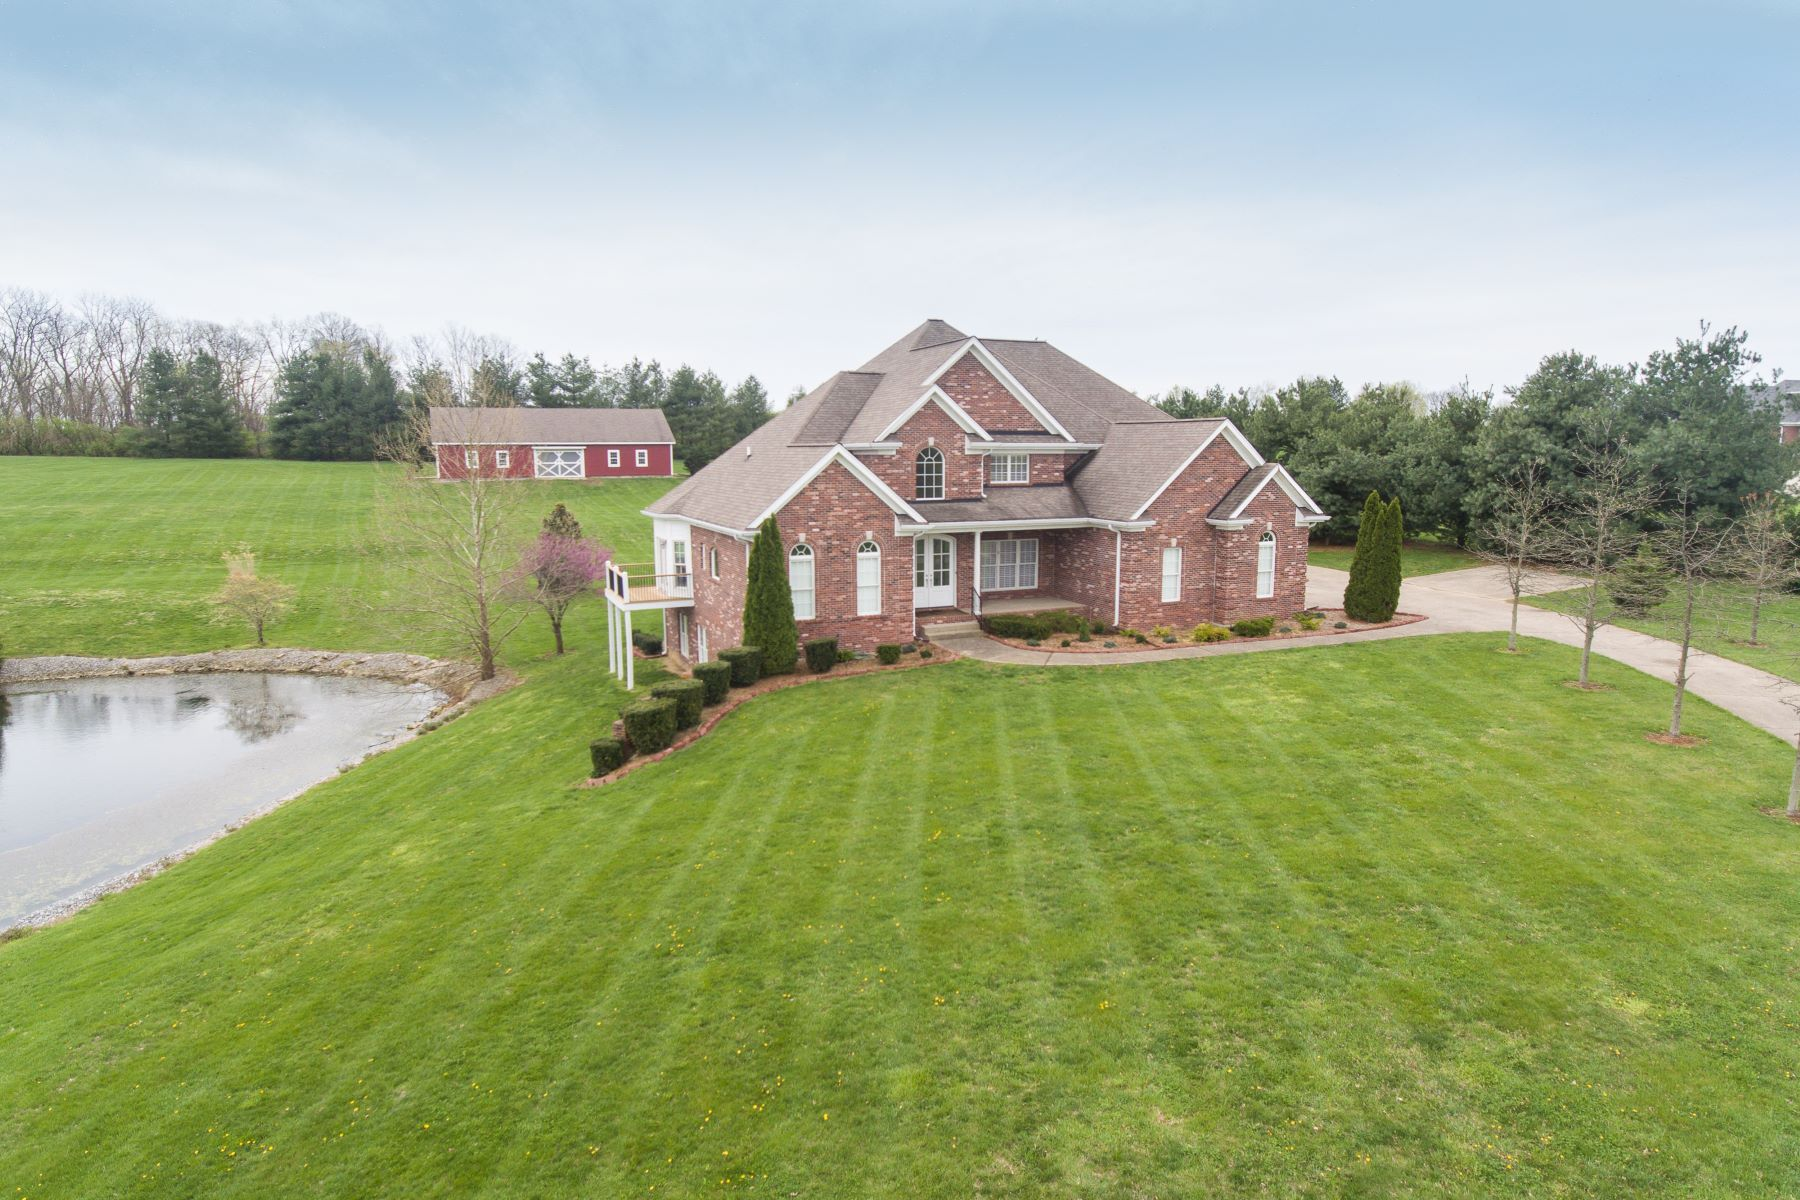 Single Family Home for Sale at 1100 Majestic Oaks Way 1100 Majestic Oaks Way Simpsonville, Kentucky 40067 United States